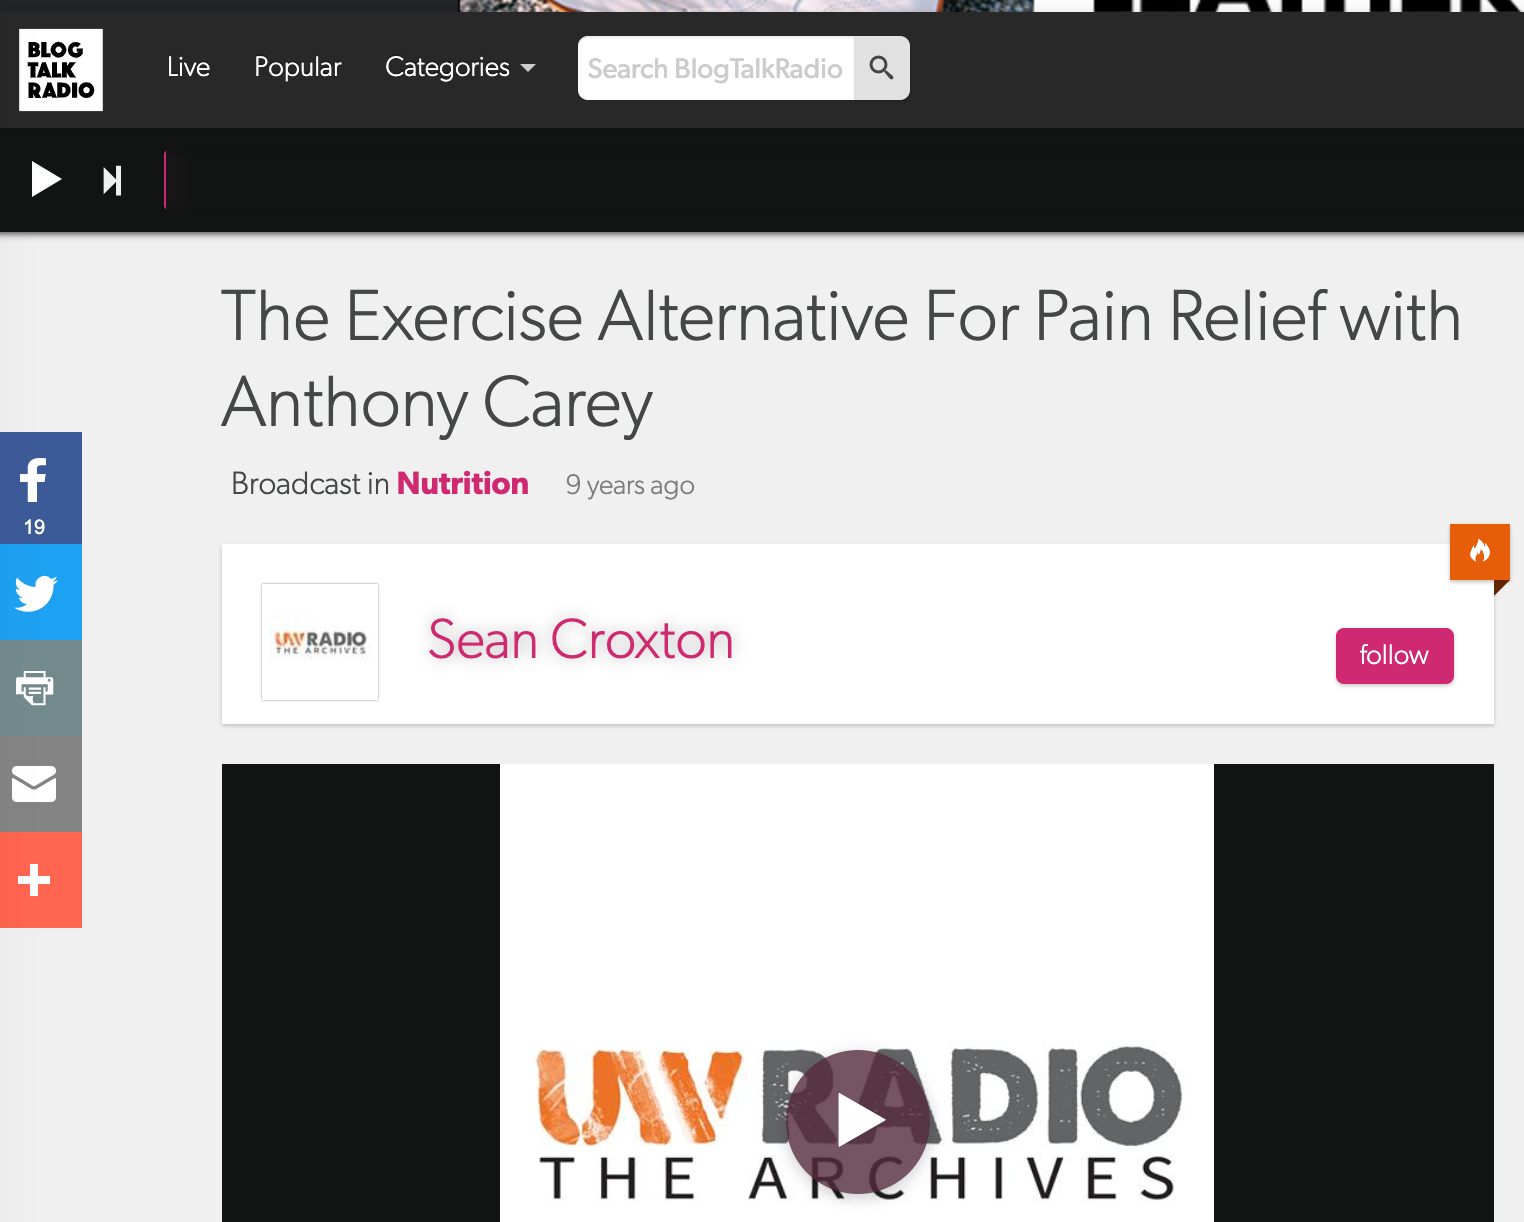 UNDERGROUND WELLNESS PODCAST JULY 9, 2010: The Pain Free Program With Anthony Carey